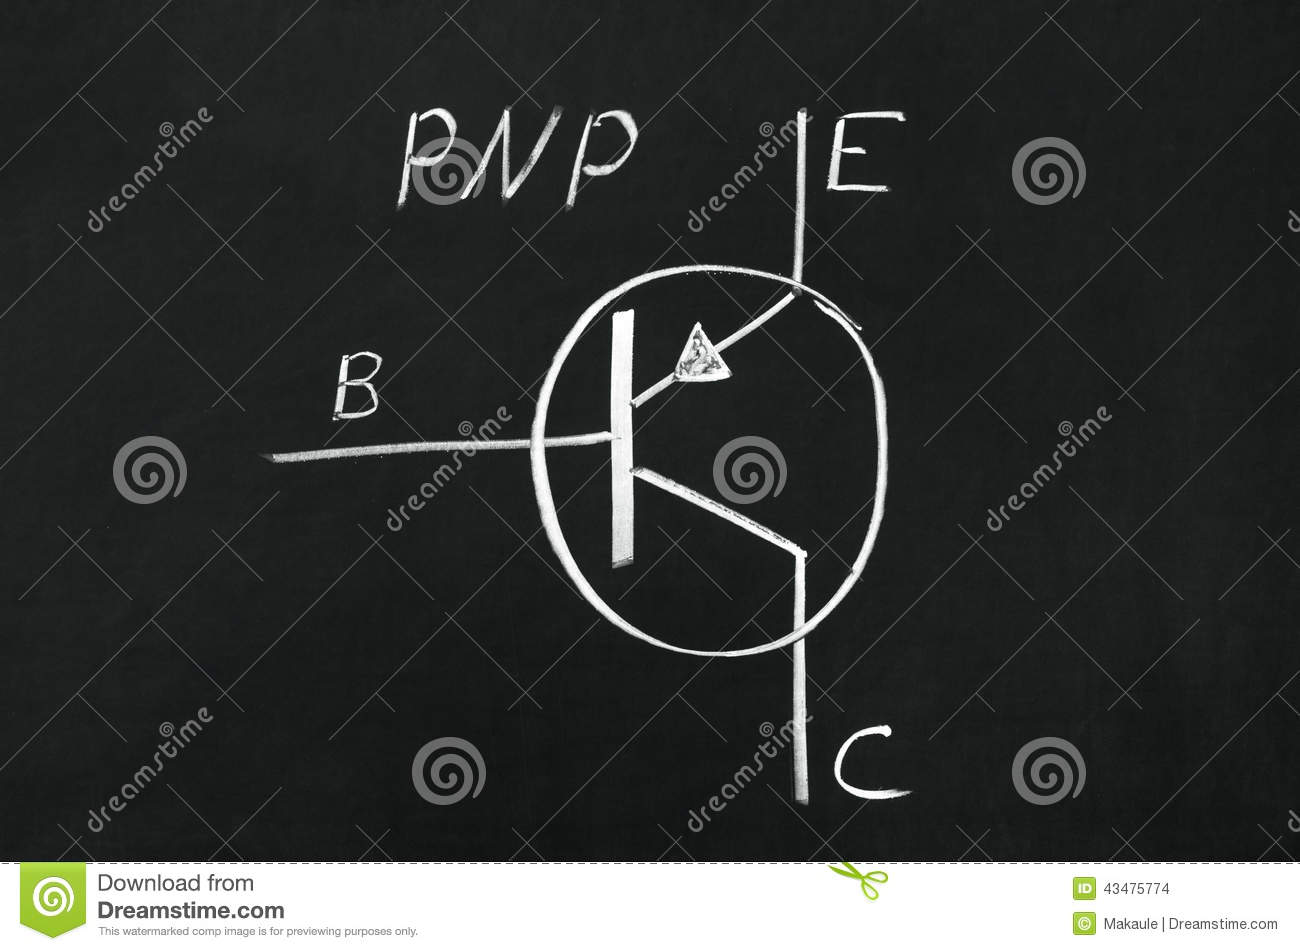 Pnp Transistor Diagram Stock Photo Image Of Plan Schematics 43475774